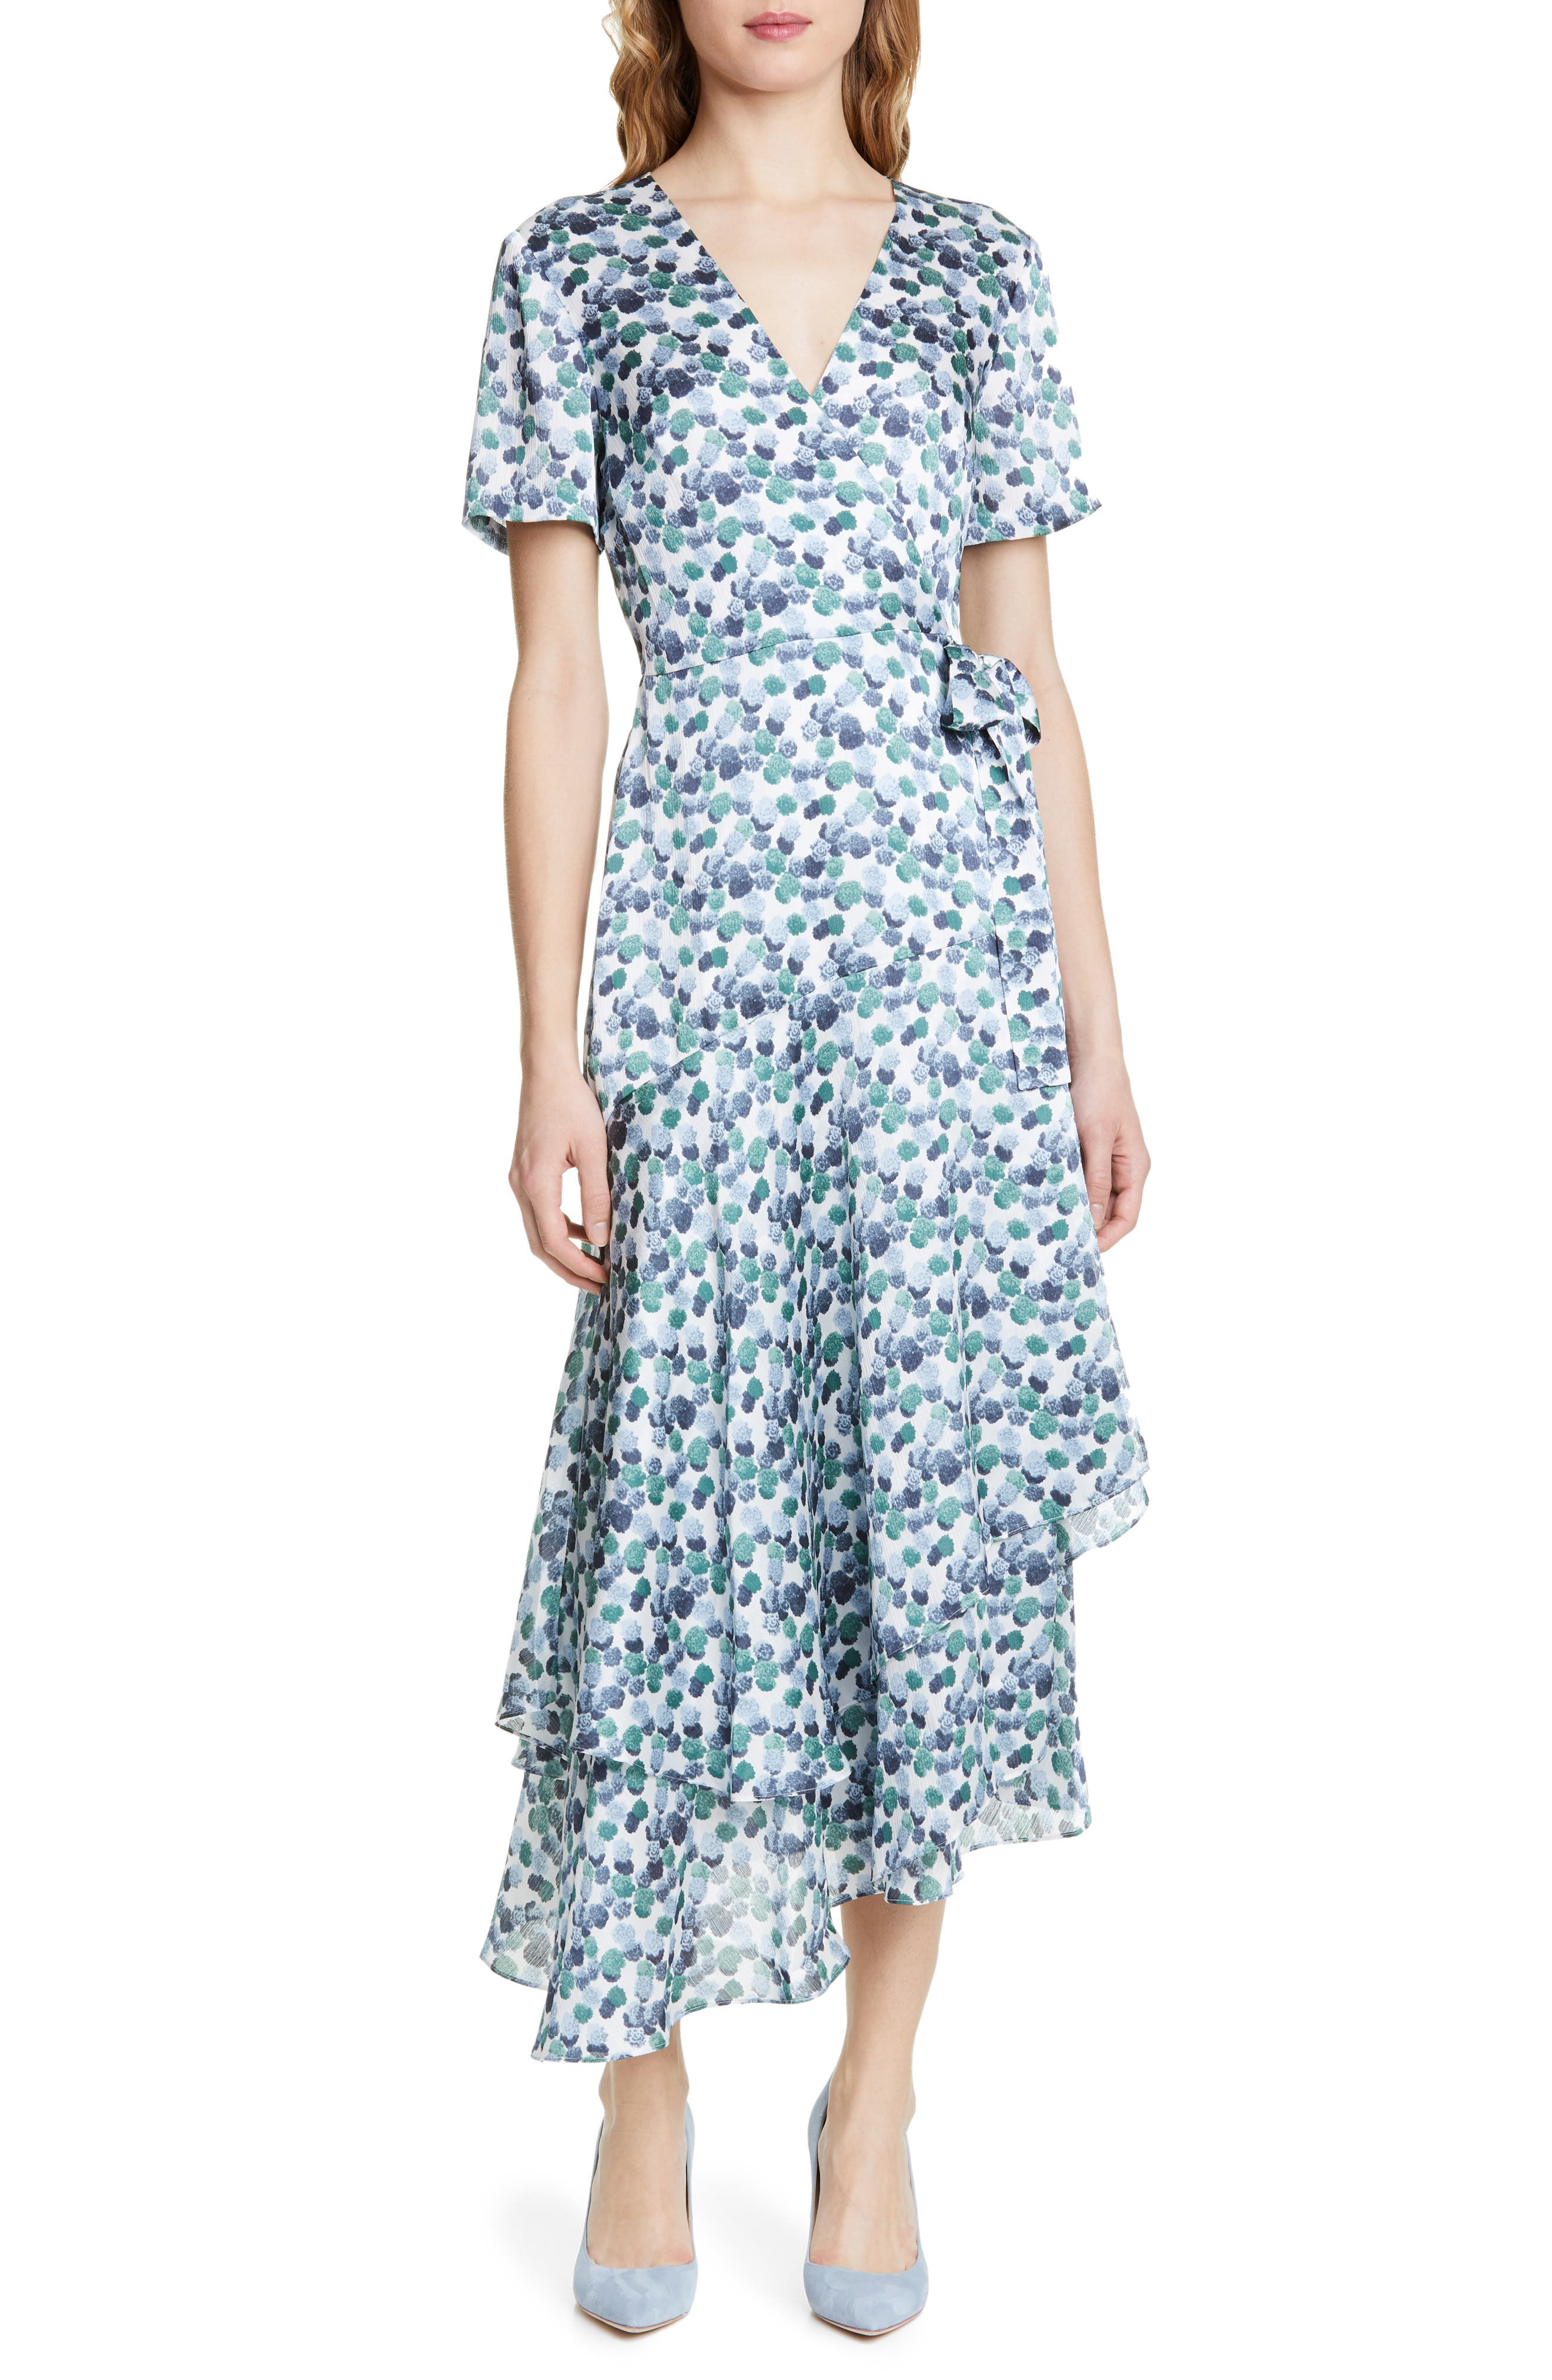 1920s Day Dresses, Tea Dresses, Mature Dresses with Sleeves Womens Club Monaco Zaydie Asymmetrical Wrap Dress $298.00 AT vintagedancer.com